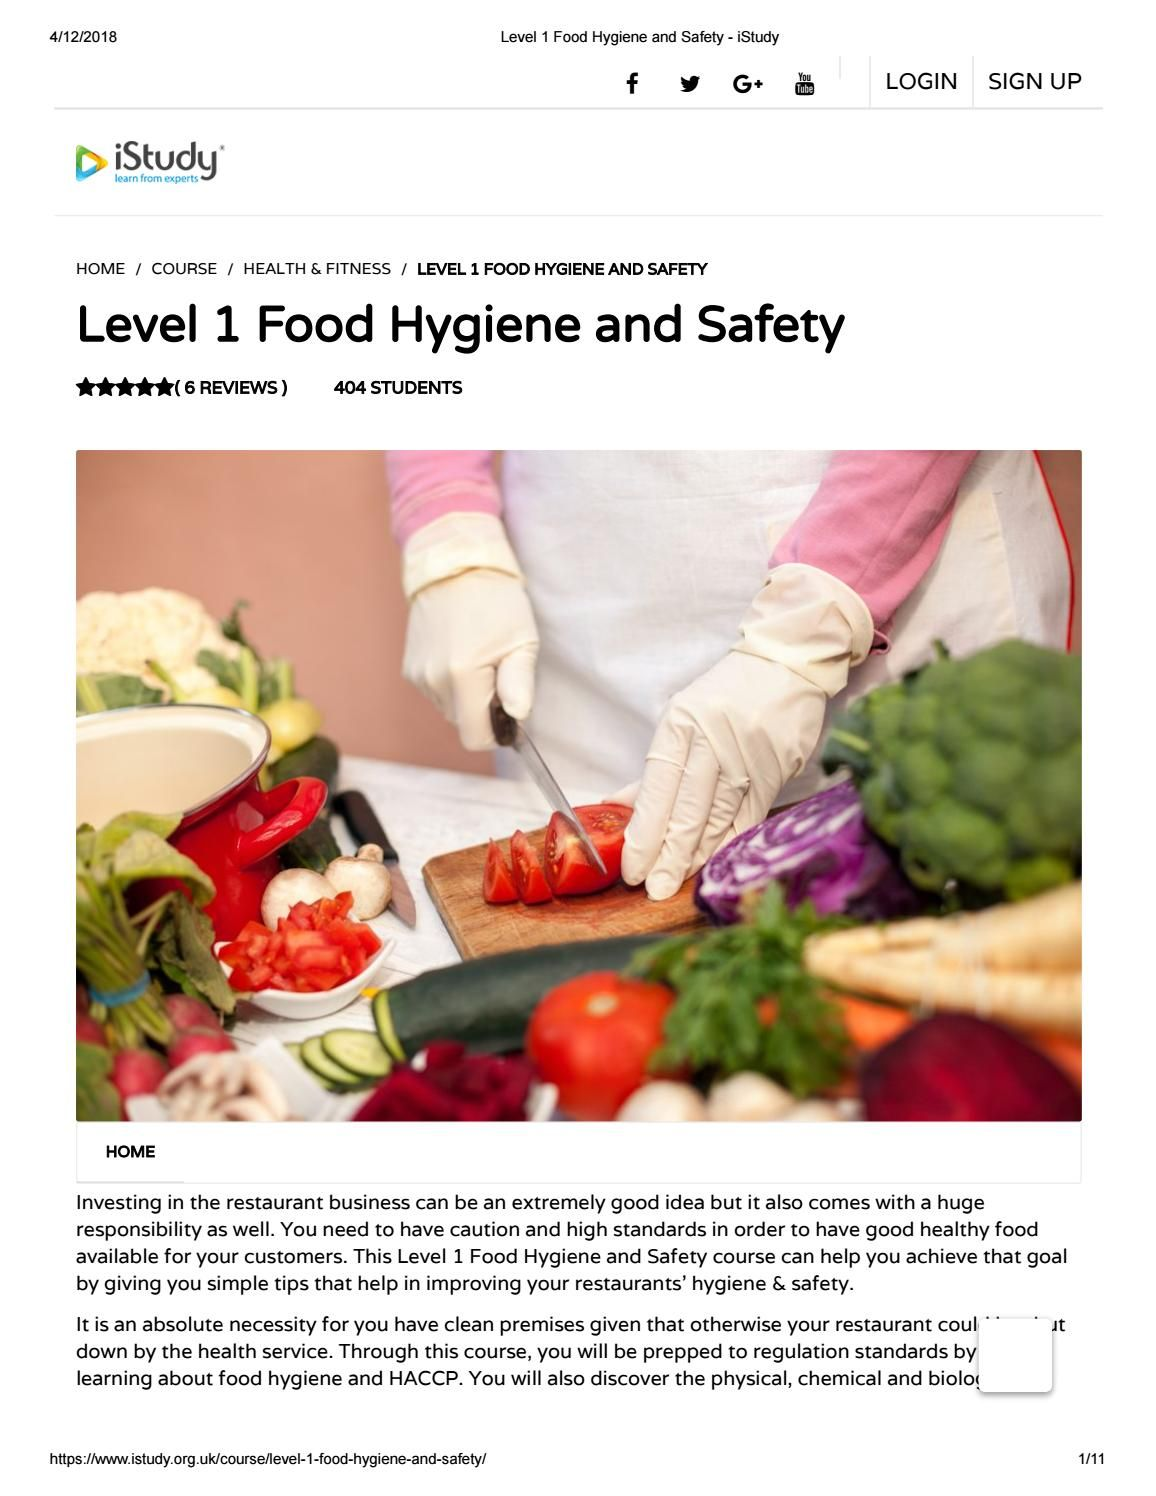 Level 1 Food Hygiene And Safety Istudy Food Online